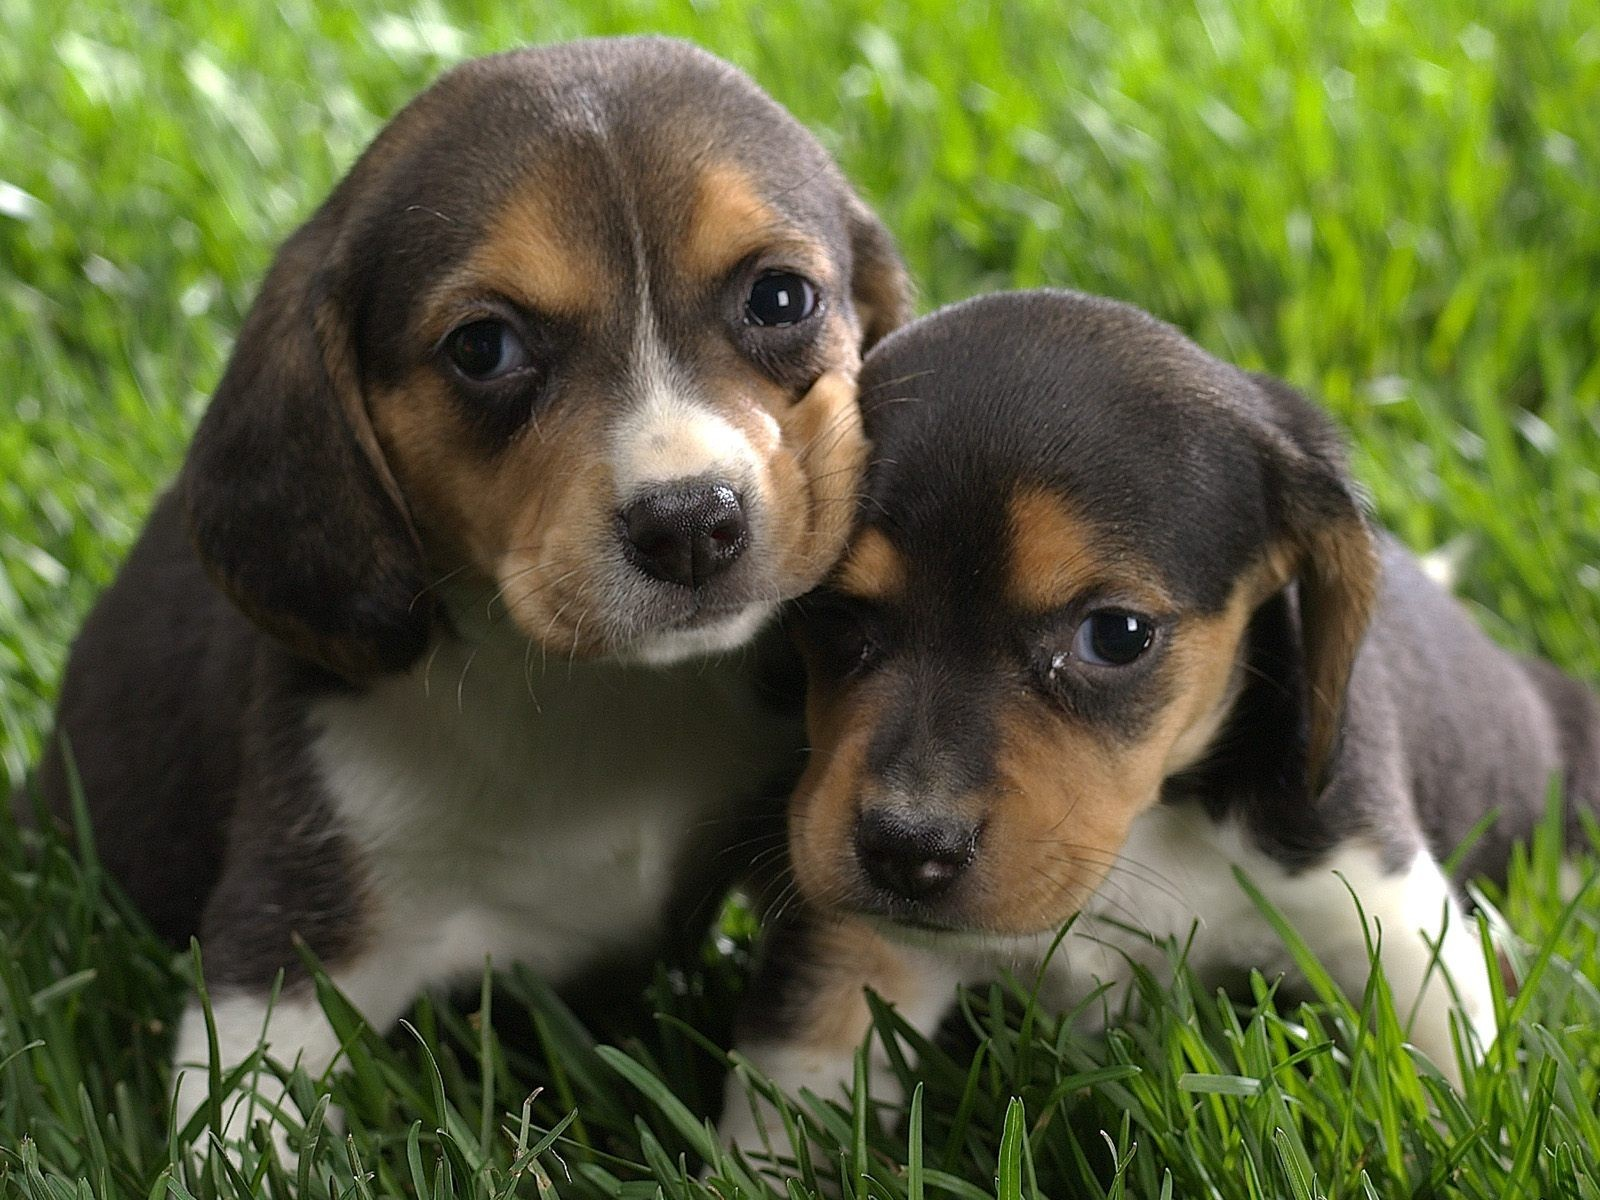 cute puppy puppies very wallpapers hd dogs animals baby dog beagle pretty adorable puppys pups cutest beagles extremely sweet babies